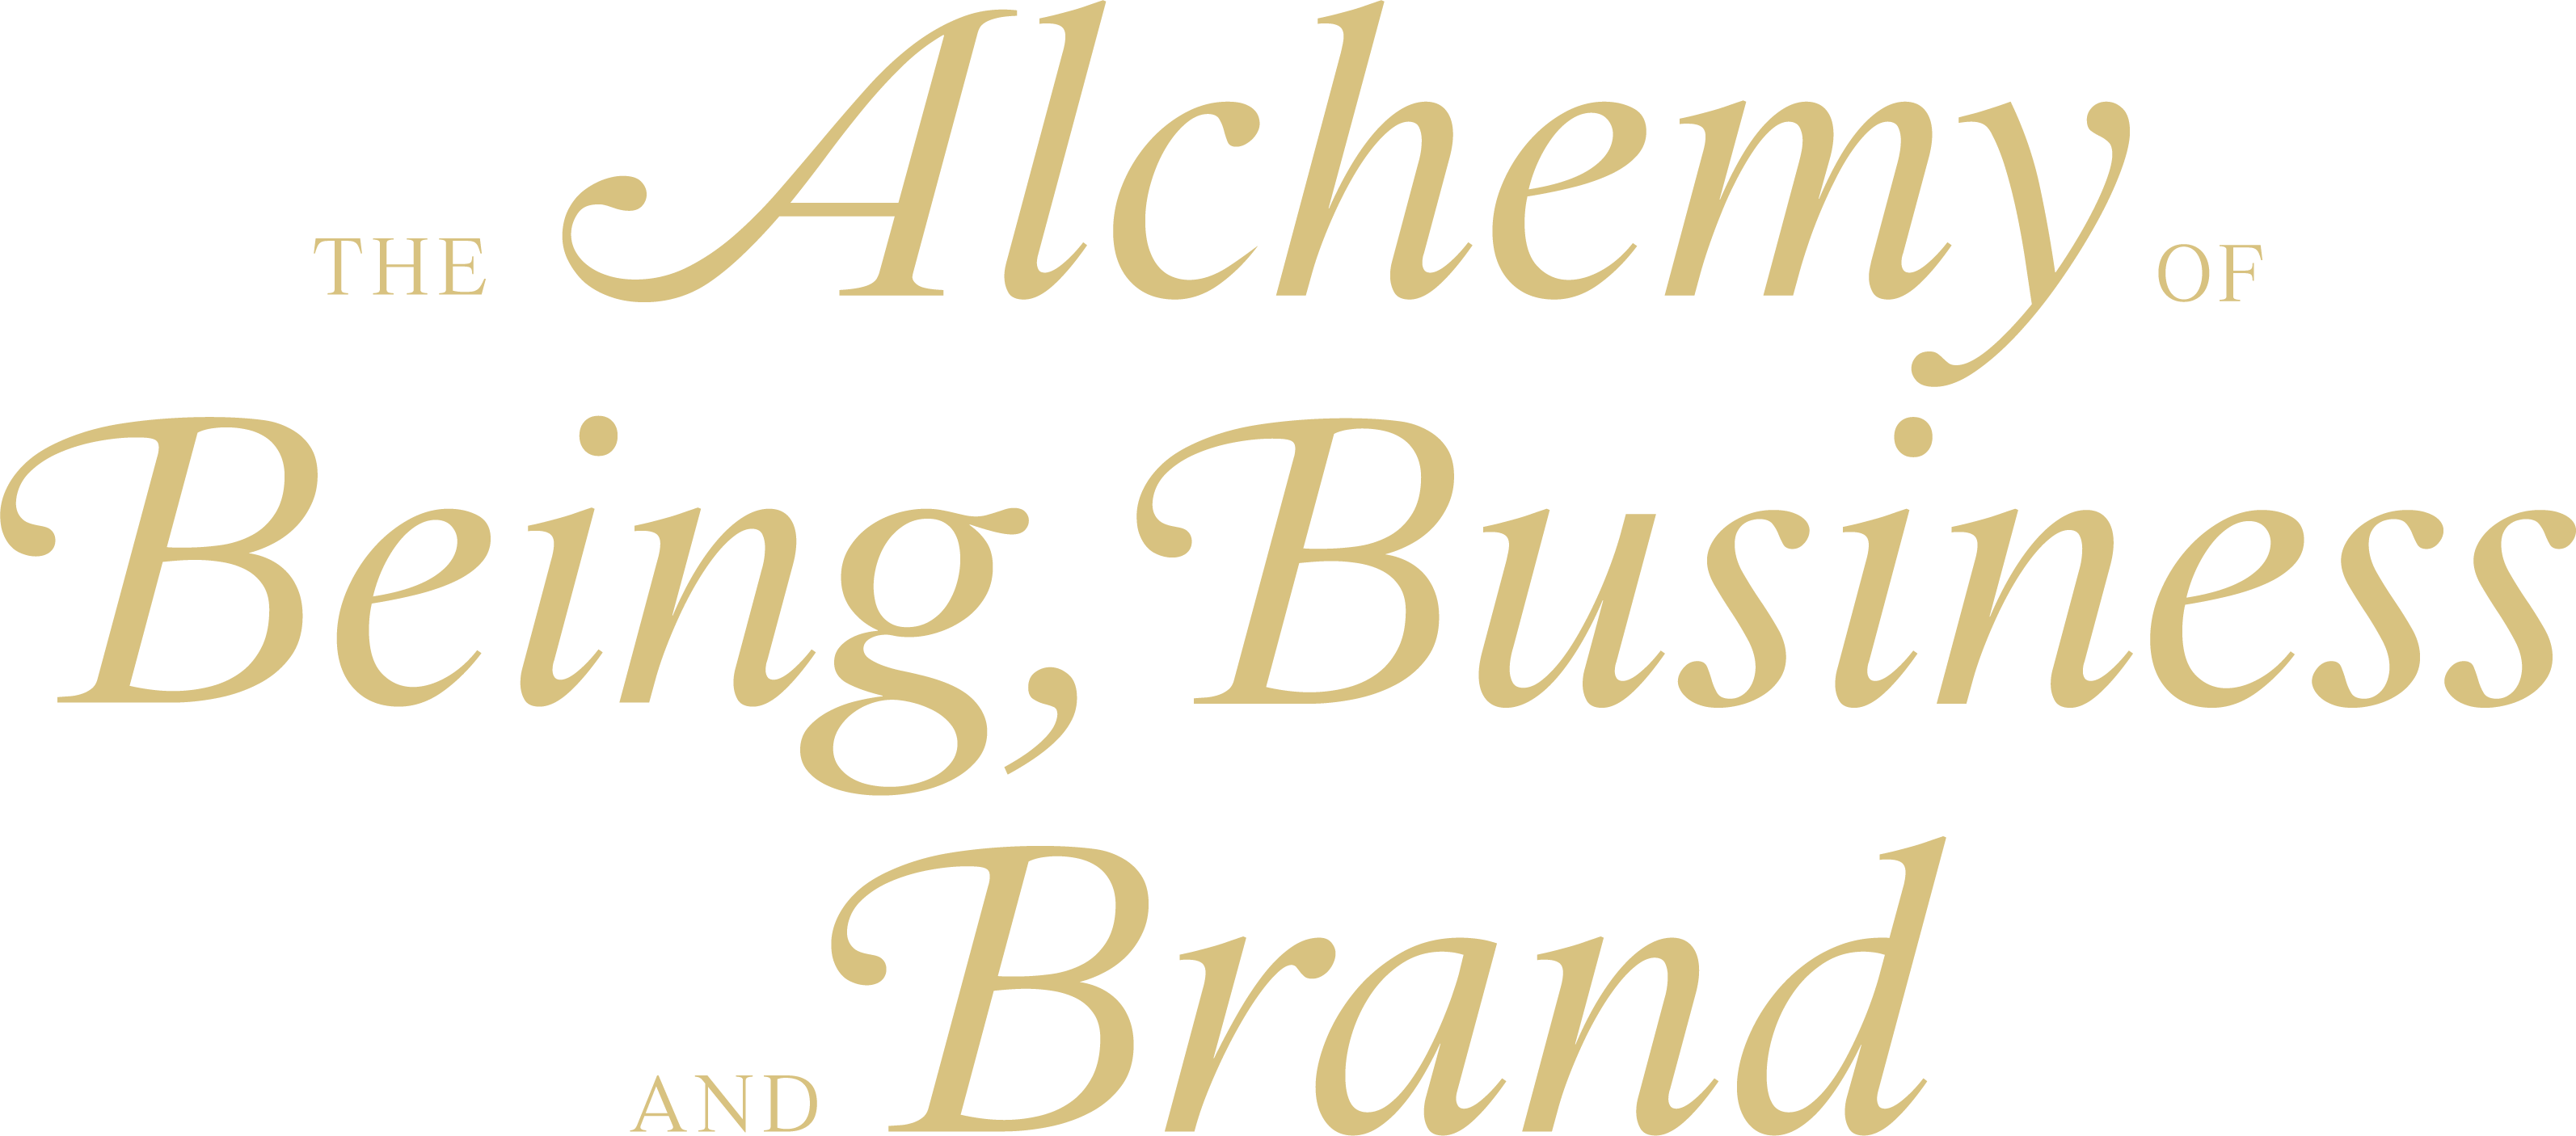 The ALCHEMY of BEING,BUSINESS, and BRAND.